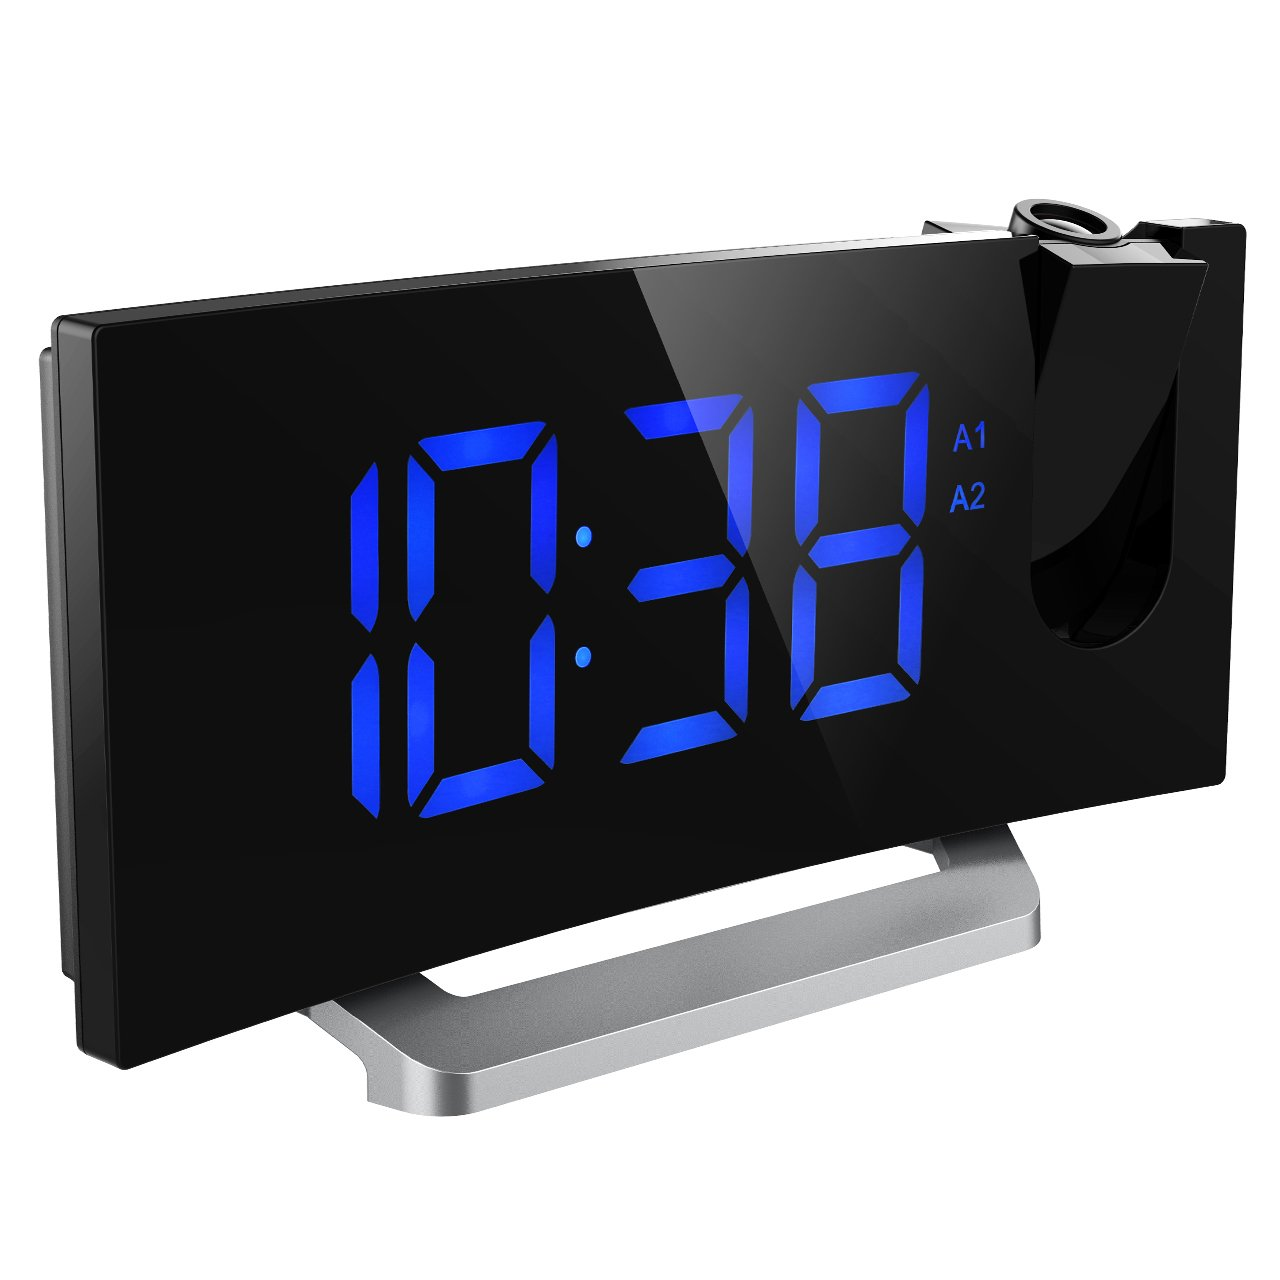 Mpow Projection Clock, FM Radio Alarm Clock, Curved-Screen Digital Alarm Clock, 5'' LED Display with Dimmer, Dual Alarm with USB Charging Port, 12/24 Hours, Backup Battery for Clock Setting by Mpow